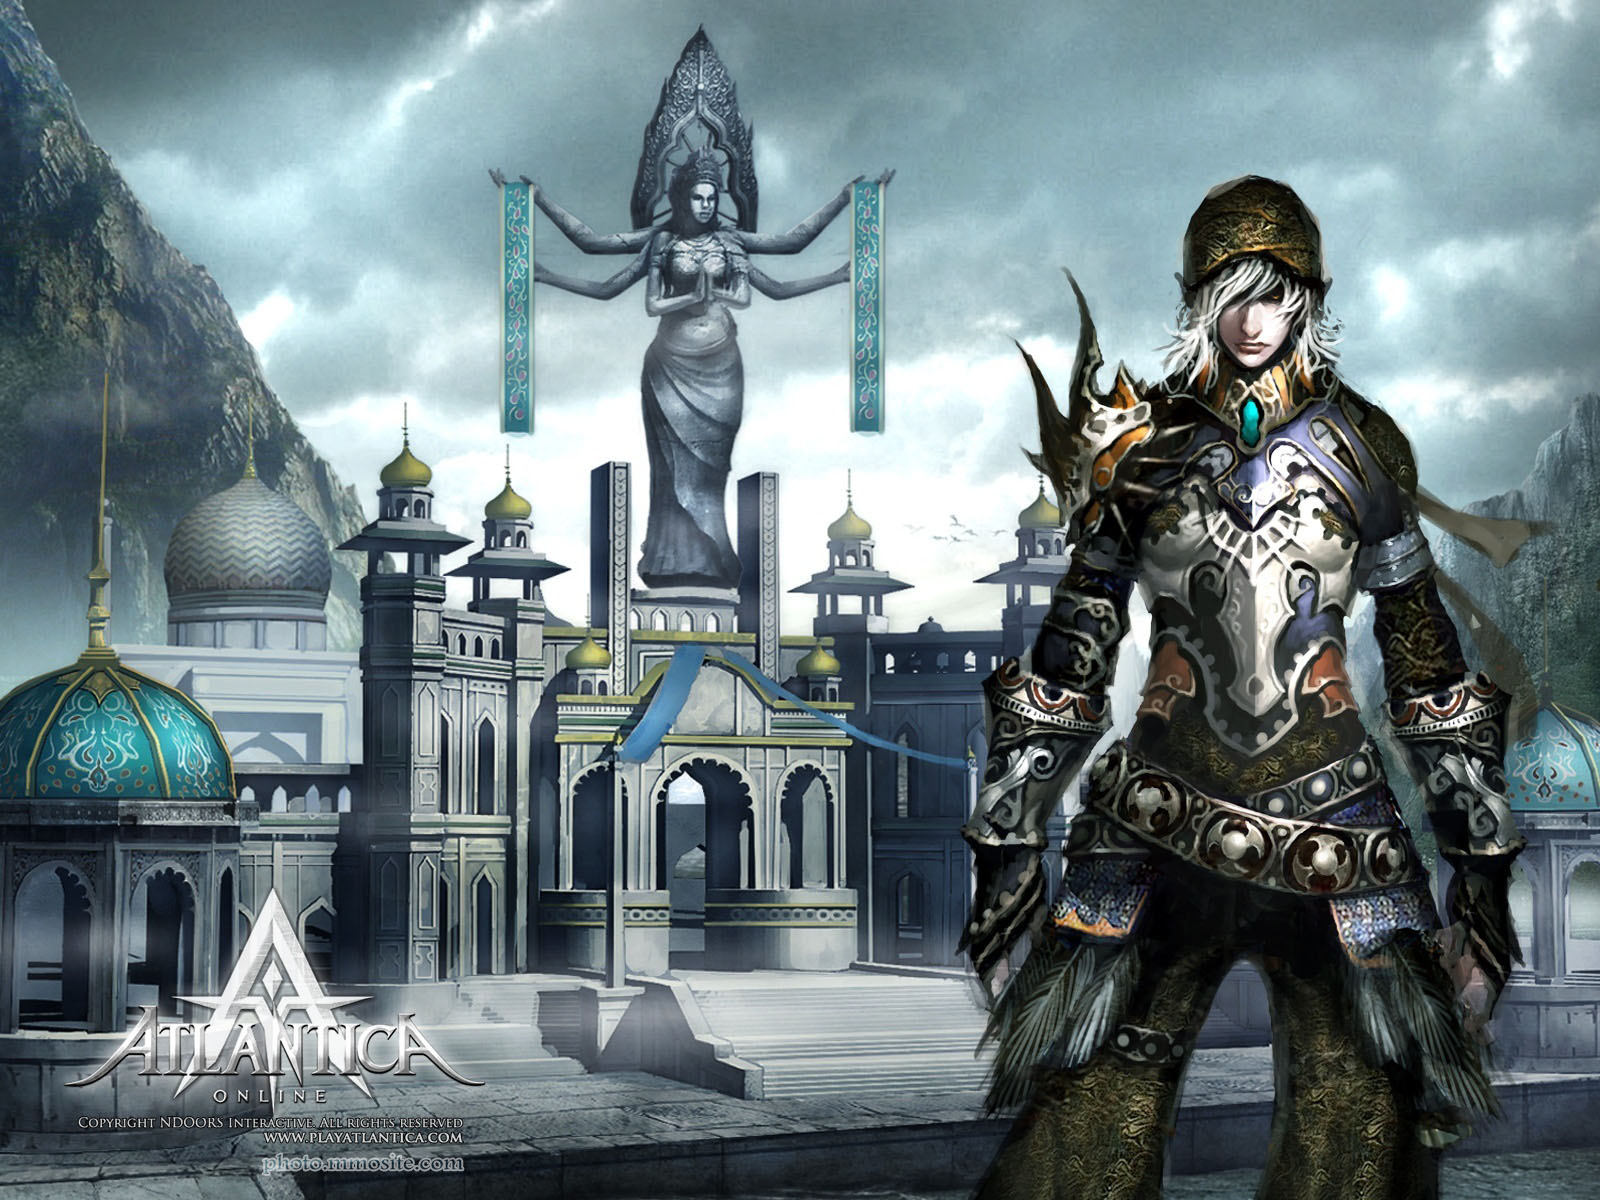 Atlantica Online Wallpaper 10 1920x1200 Wallpapers, 1920x1200 ...